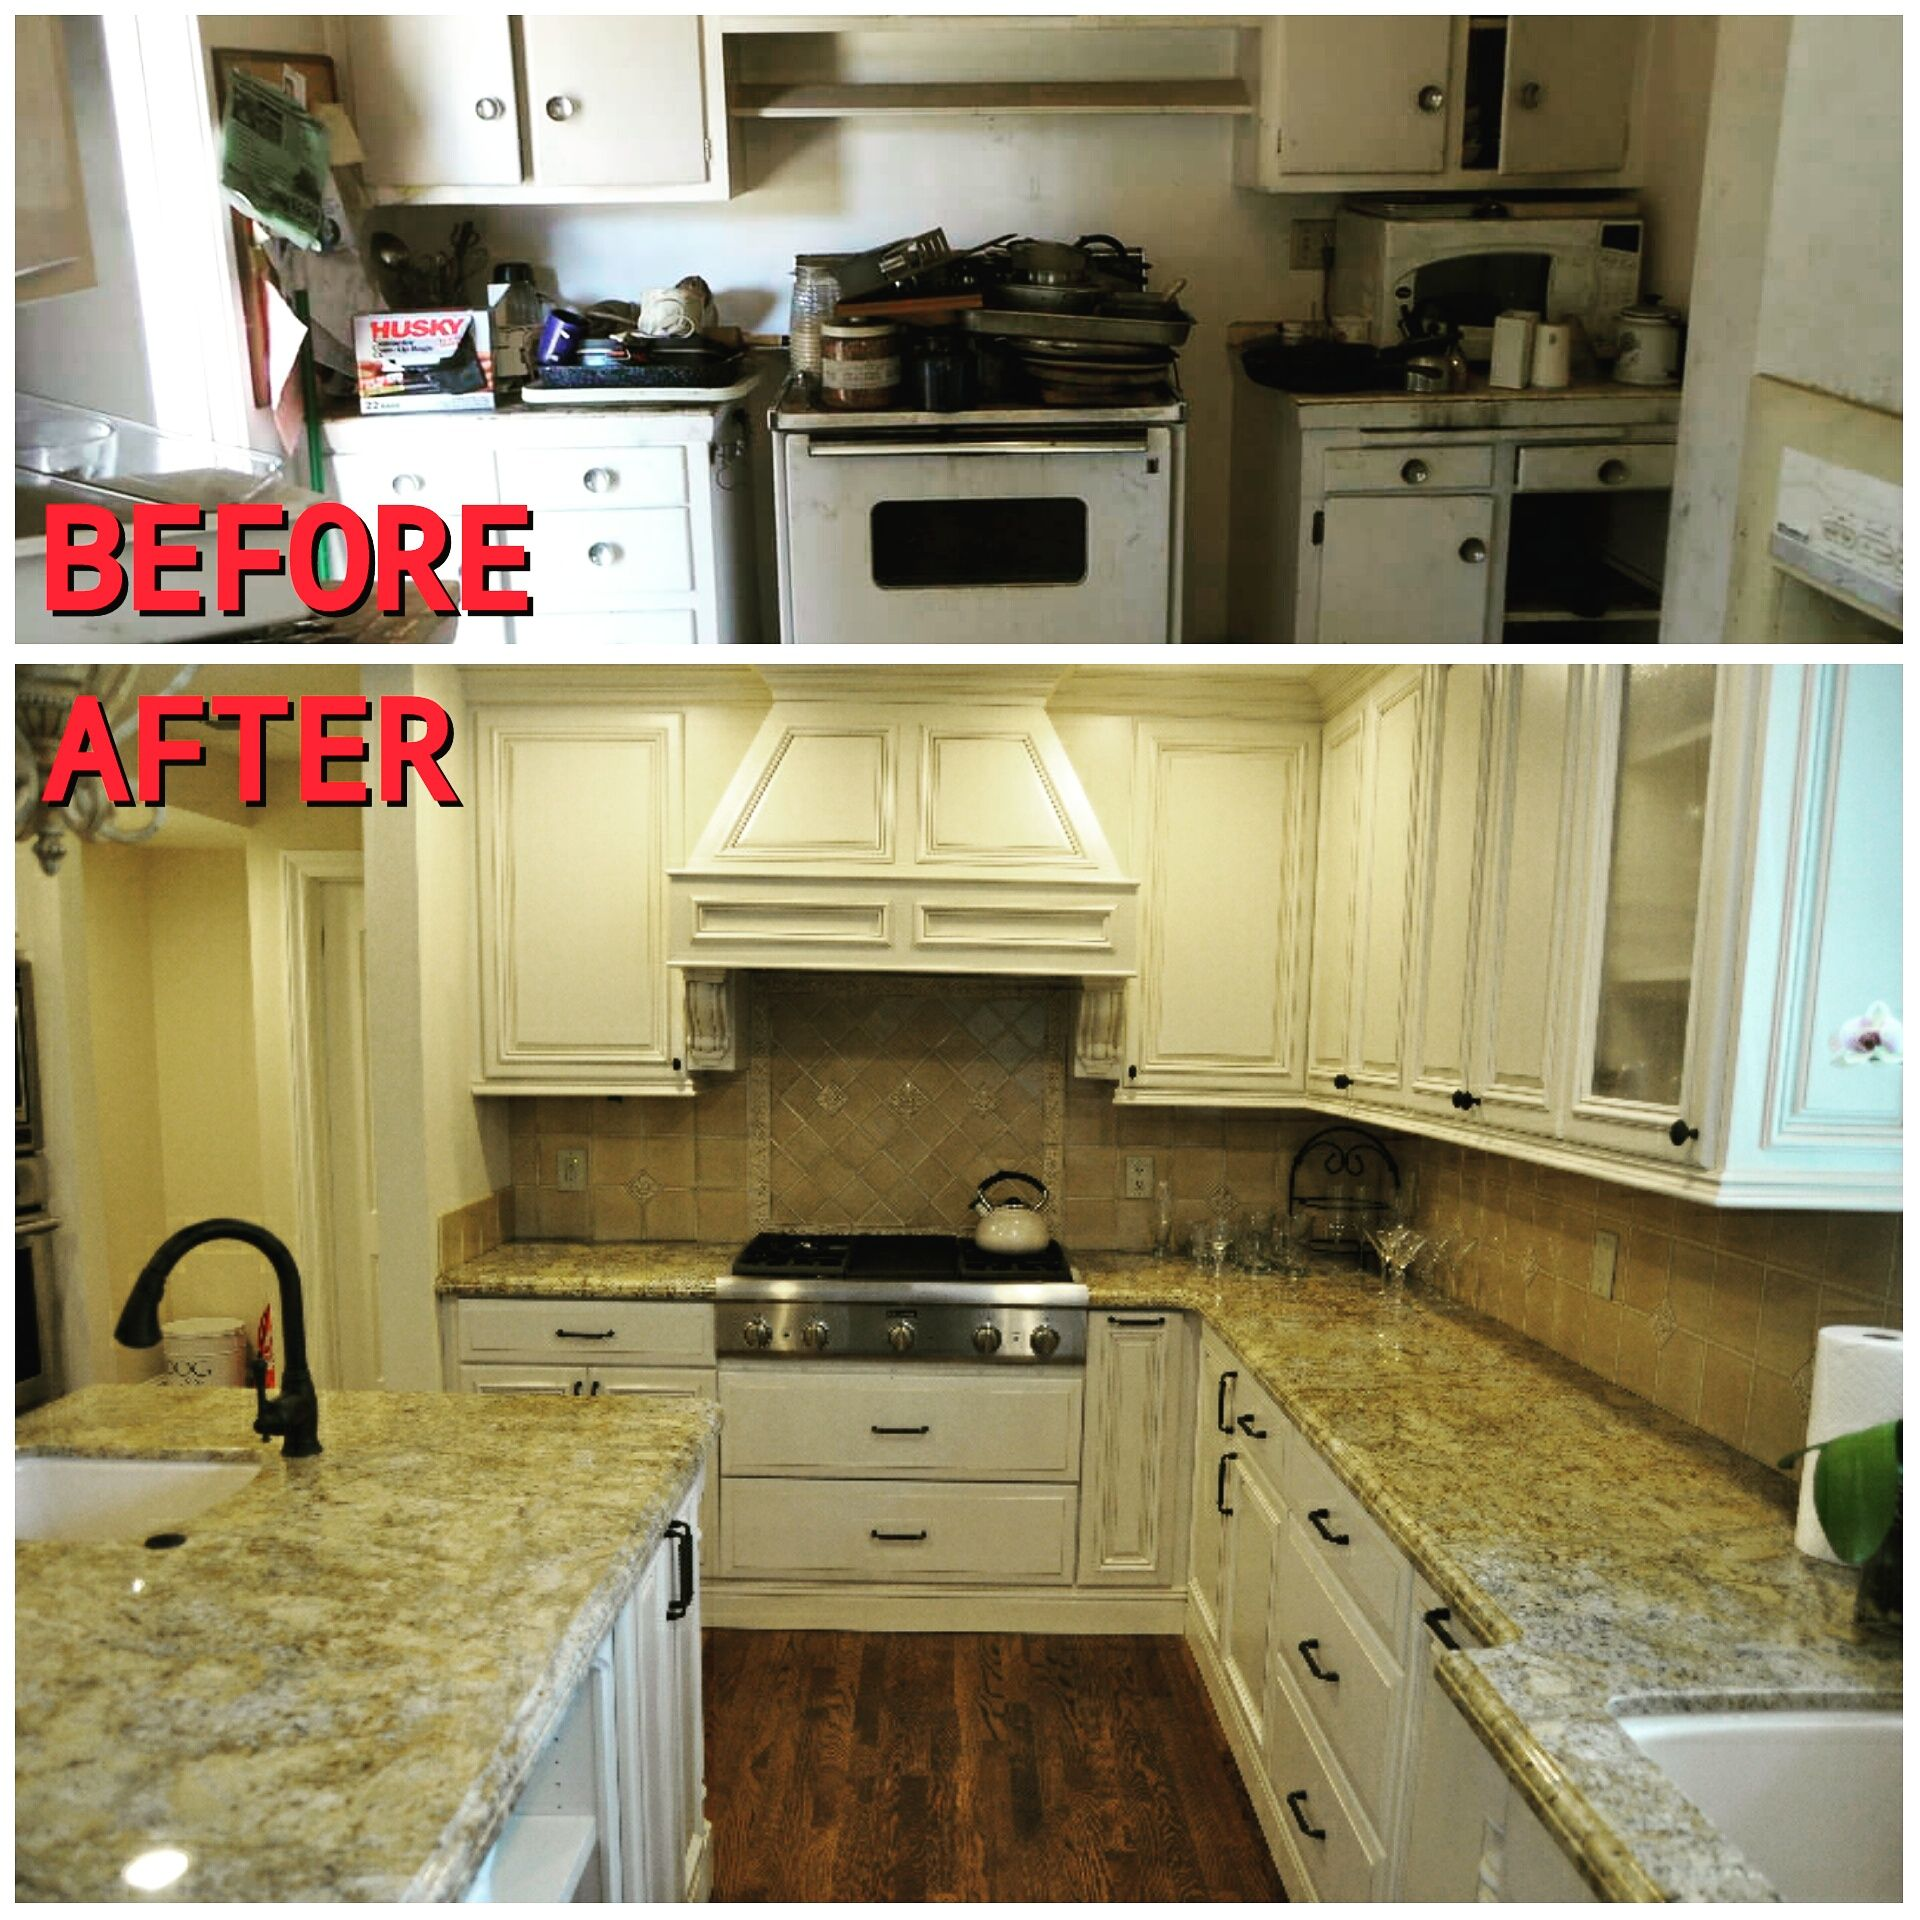 Pin On Before & After Renovations